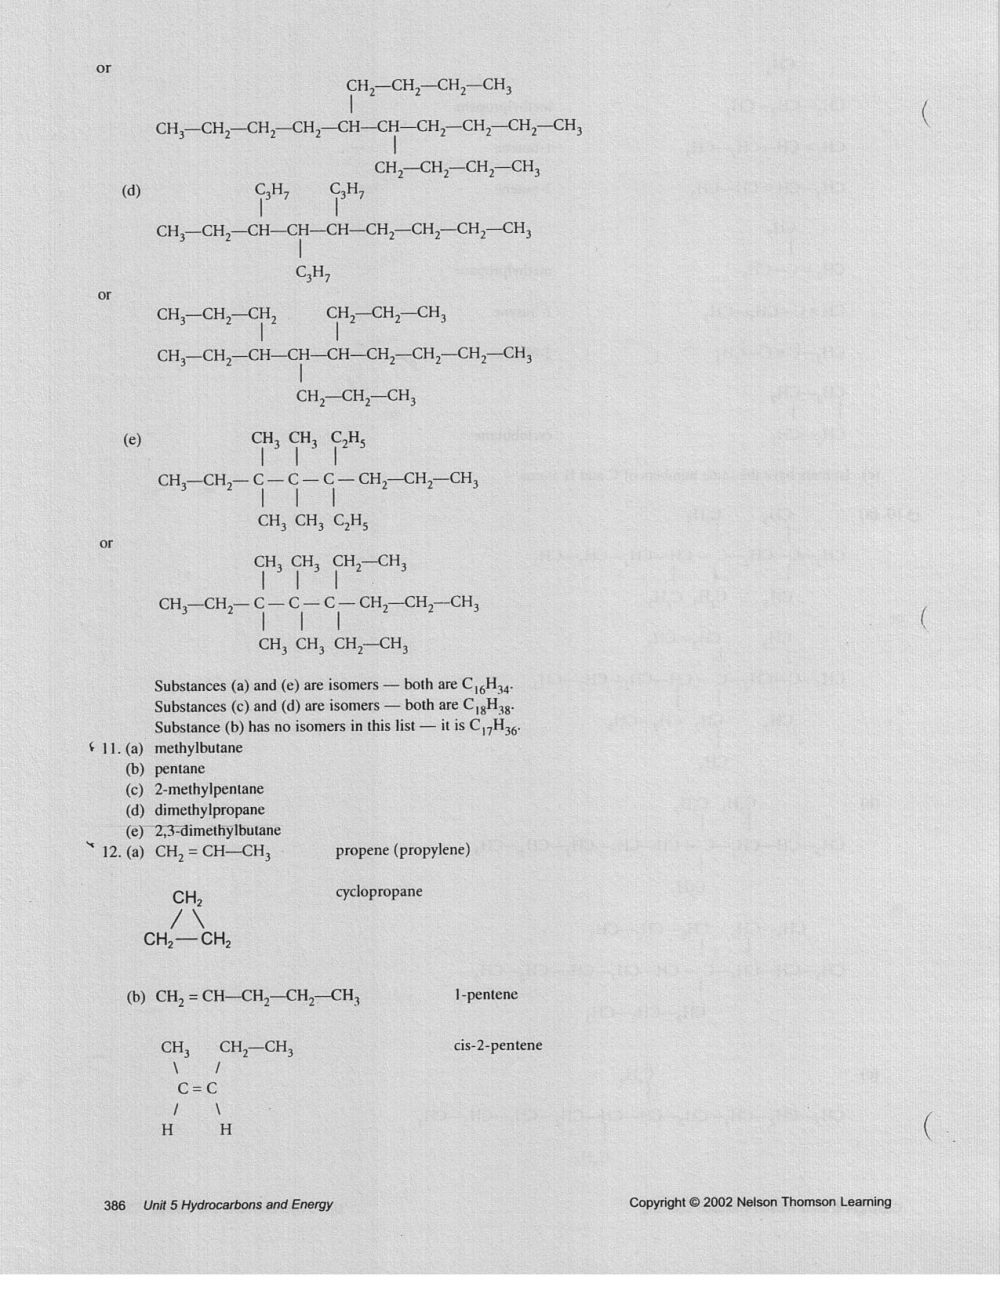 medium resolution of Grade 11 Organic Chemistry Worksheets   Printable Worksheets and Activities  for Teachers